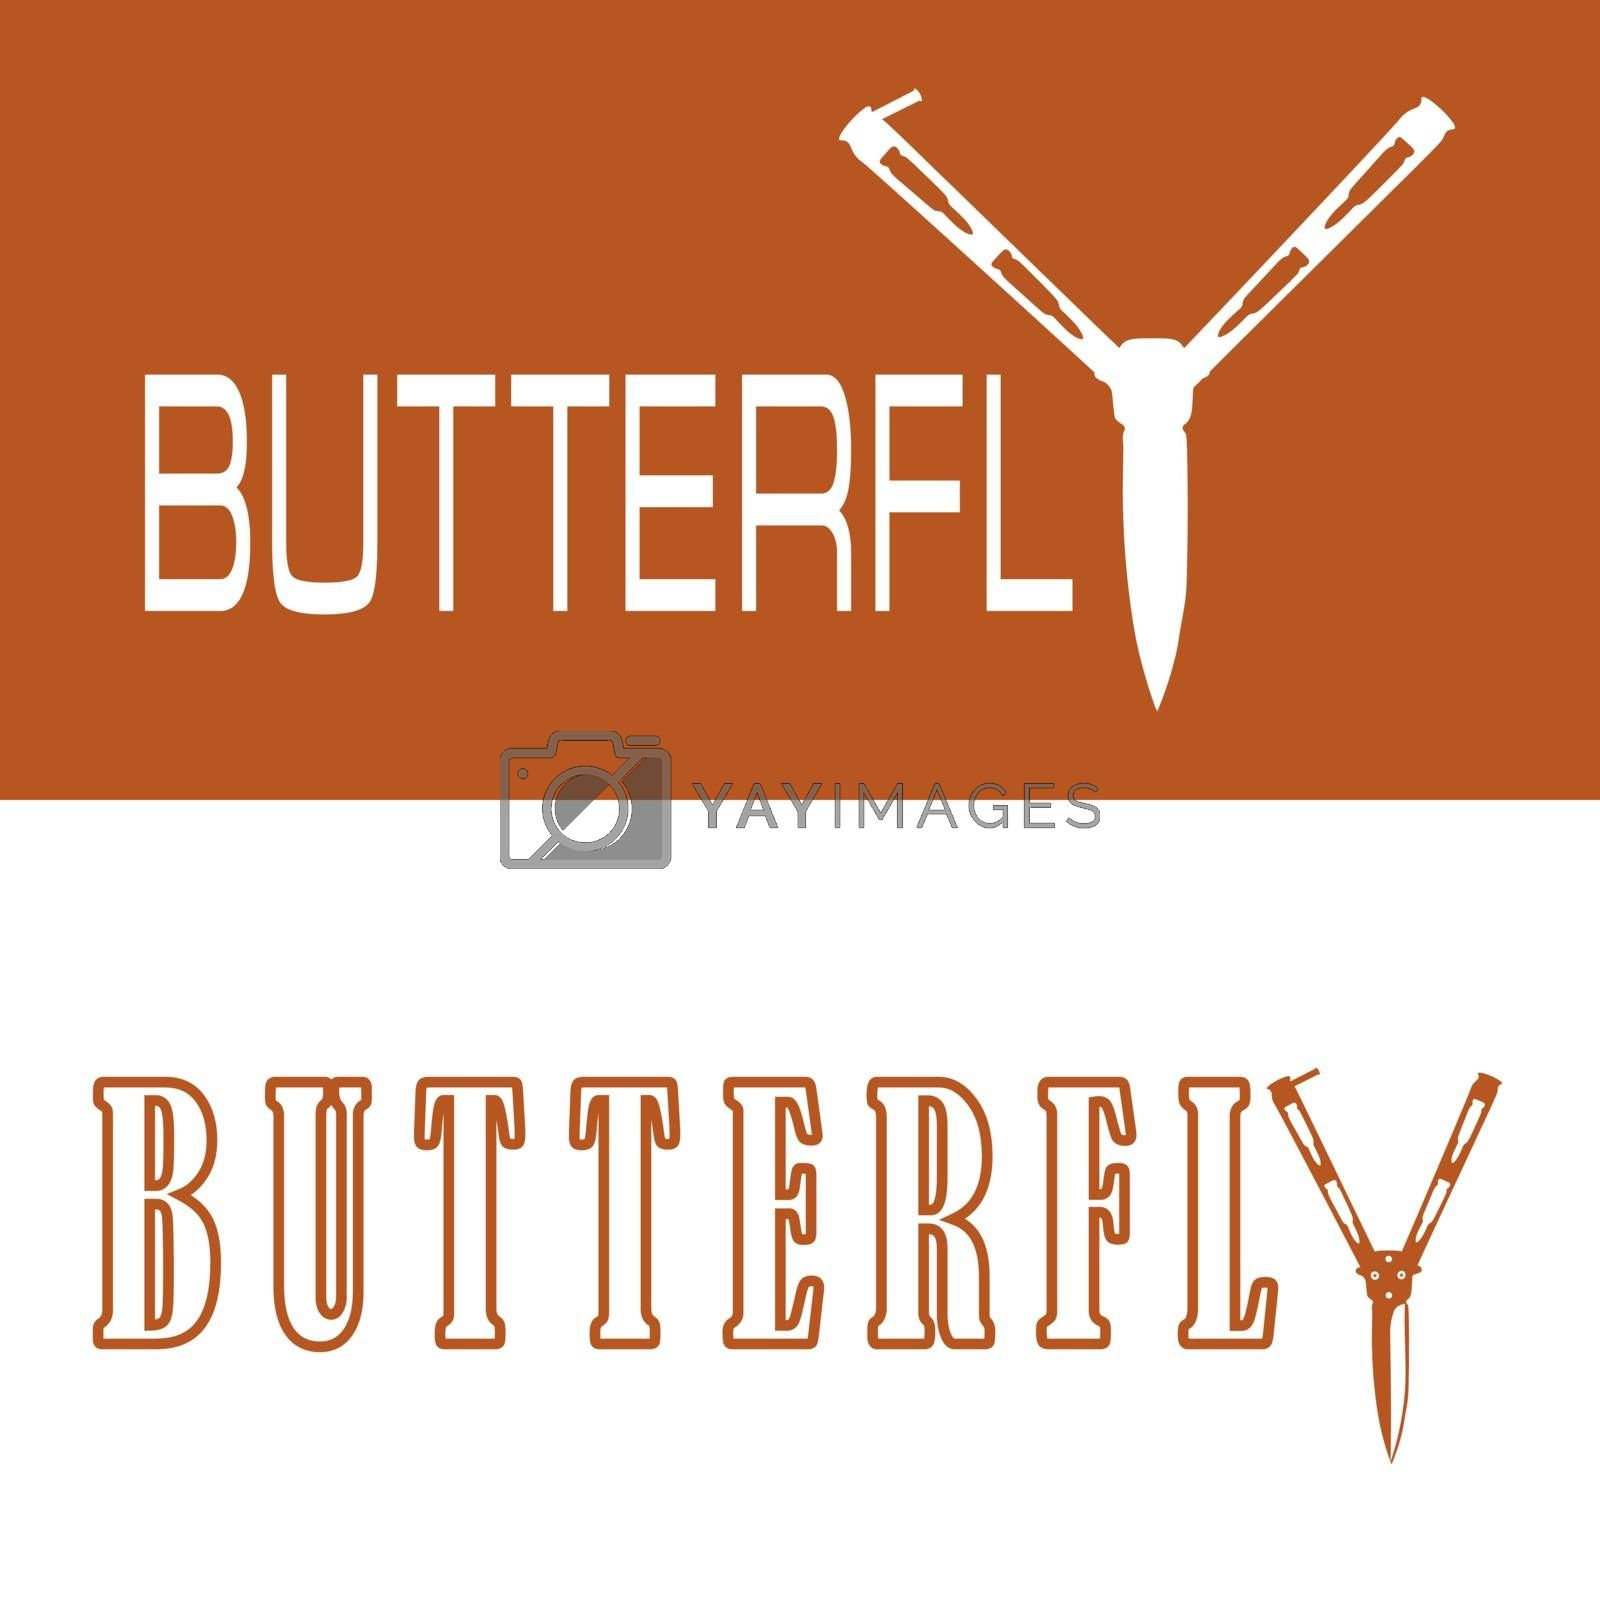 Two options of text 'butterfly' with butterfly knife instead 'y' in orange and white colors